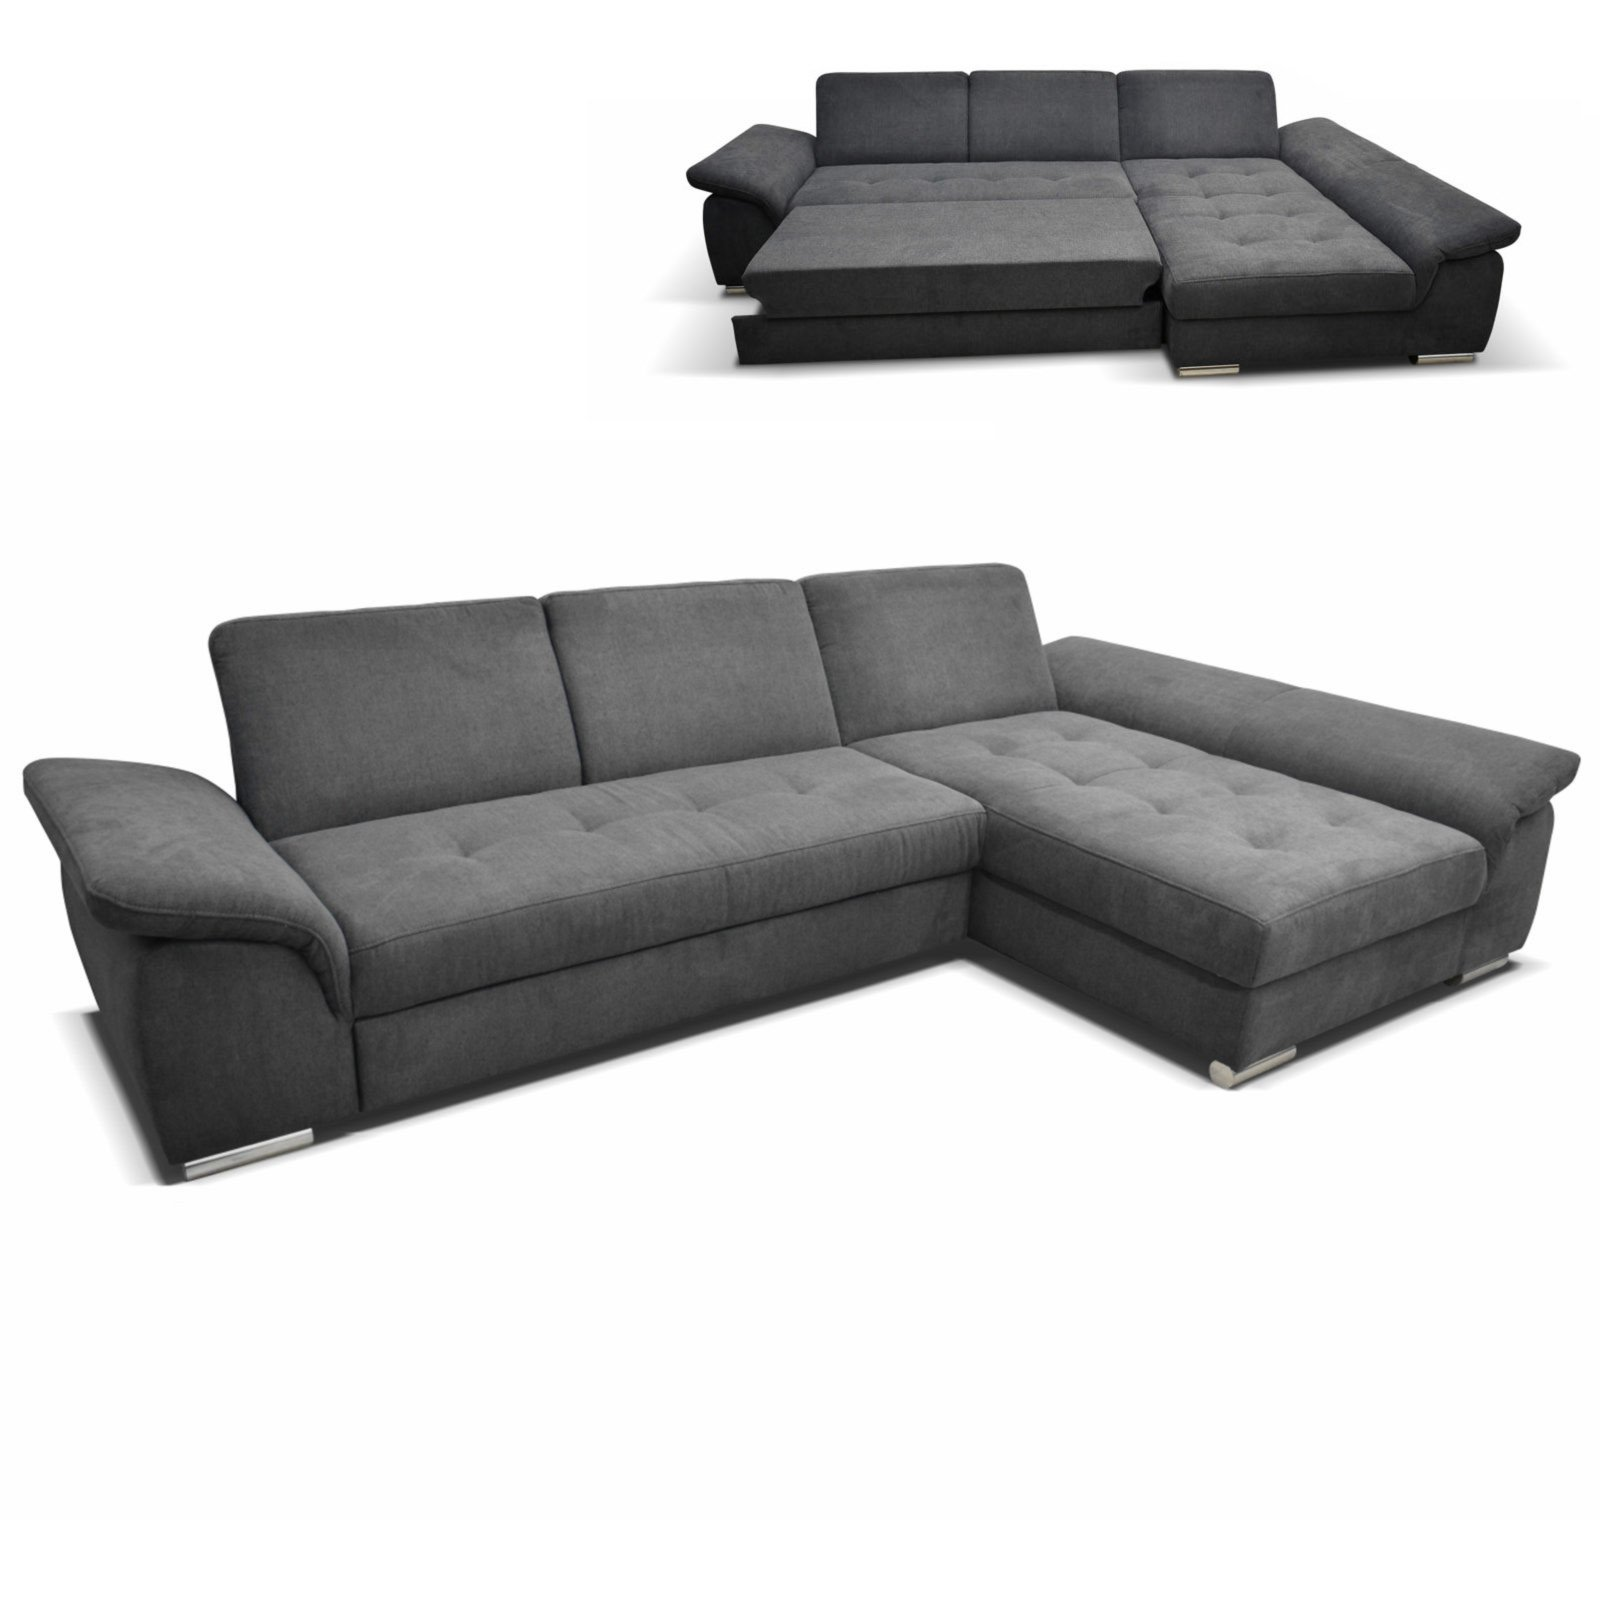 ecksofa graphit recamiere rechts mit liegefunktion ecksofas l form sofas couches. Black Bedroom Furniture Sets. Home Design Ideas